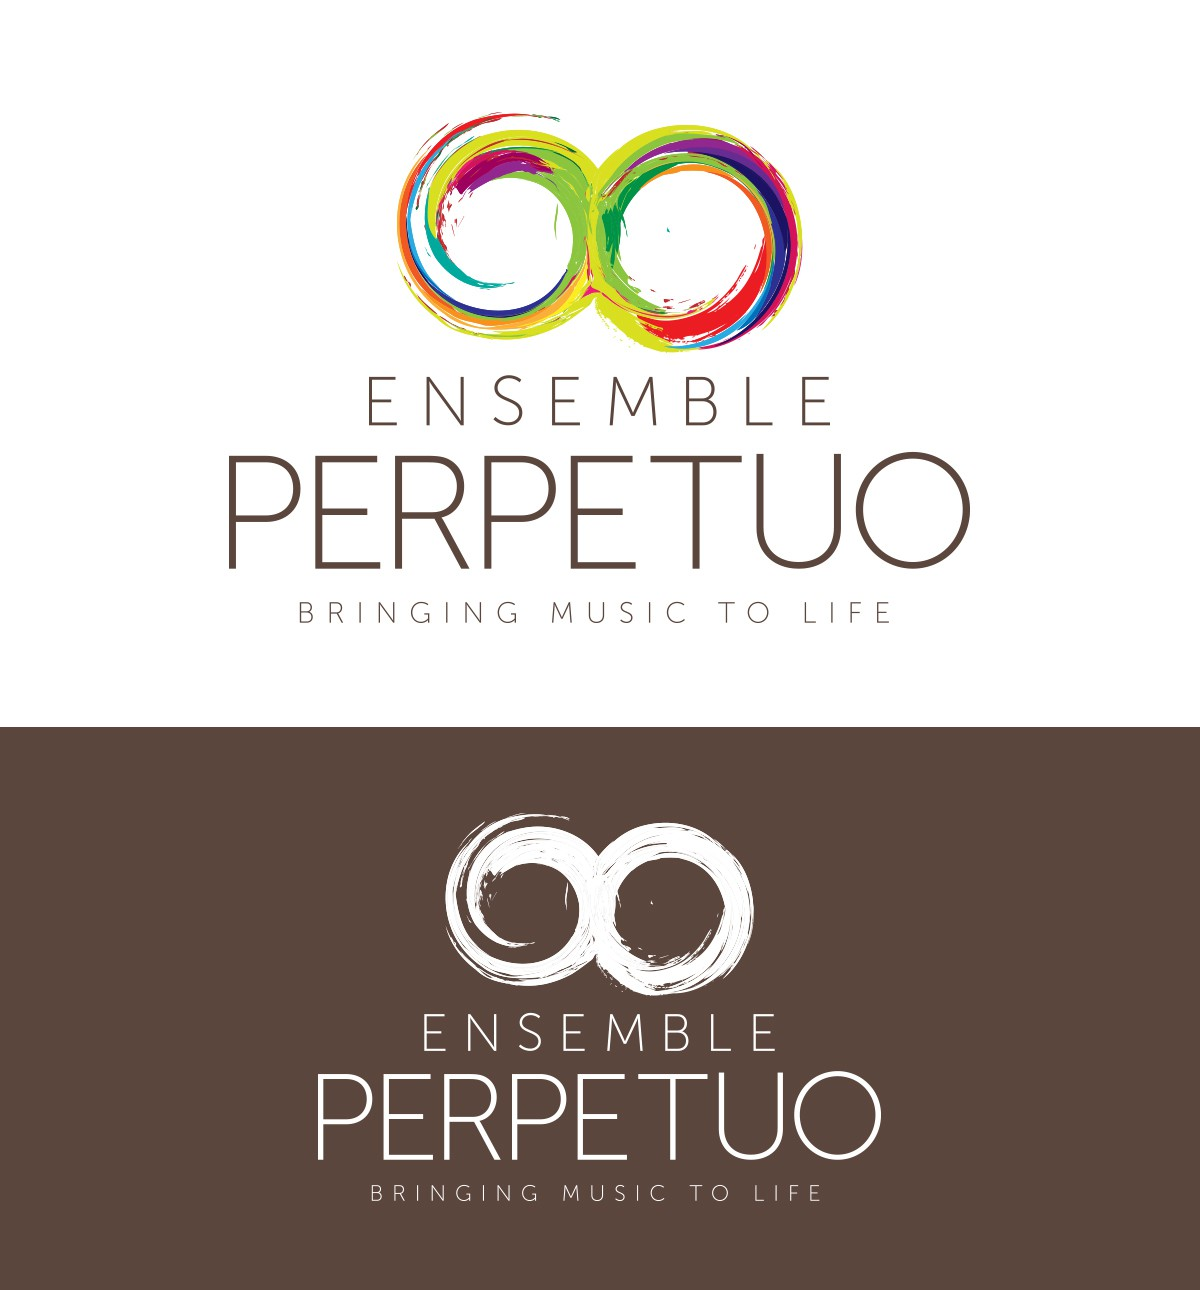 New logo wanted for Ensemble Perpetuo